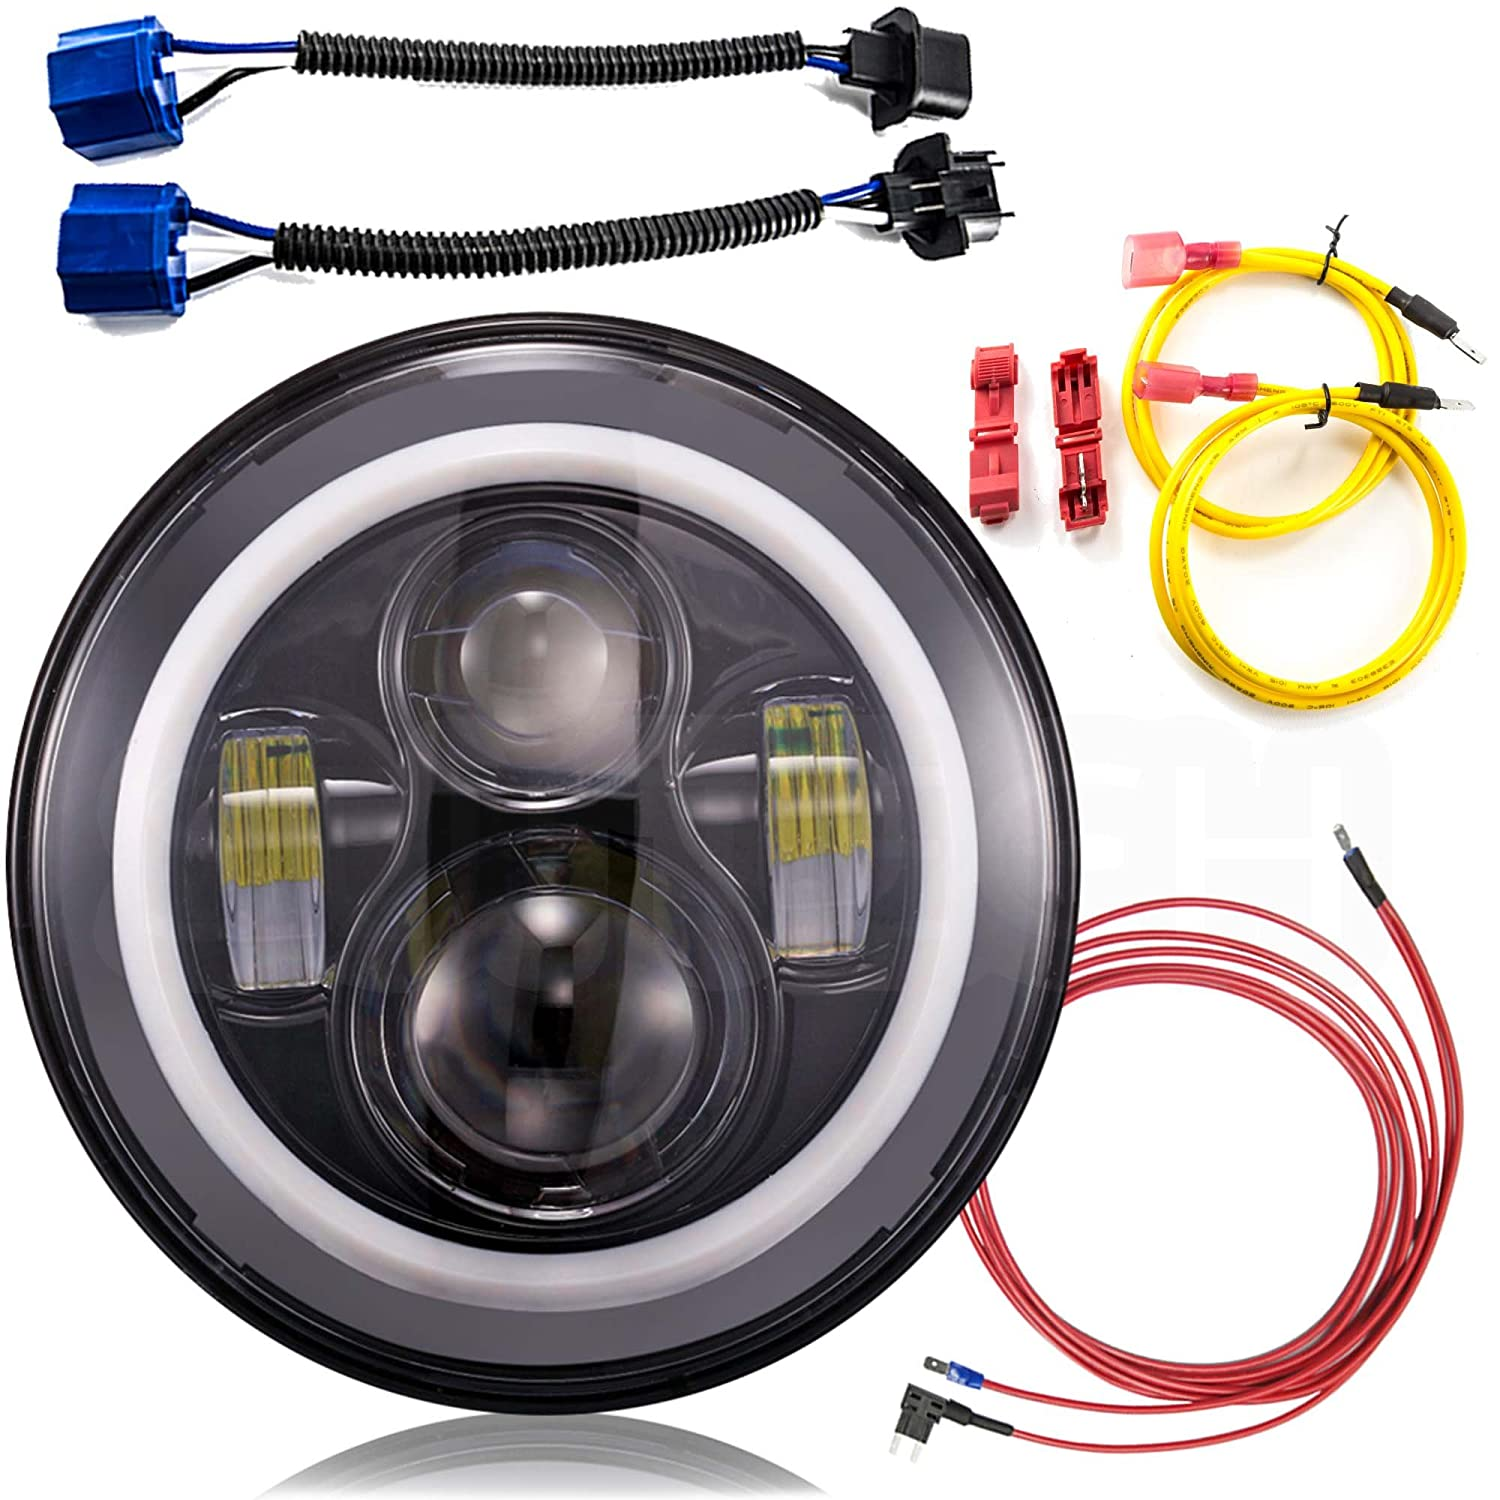 Jeep Wrangler Headlights 7 Inch Round Led Headlight 86 Cj7 Wiring Conversion Kit Dlr Light Assembly For Jk Tj Fj Hummer Trucks Motorcycle Headlamp Super